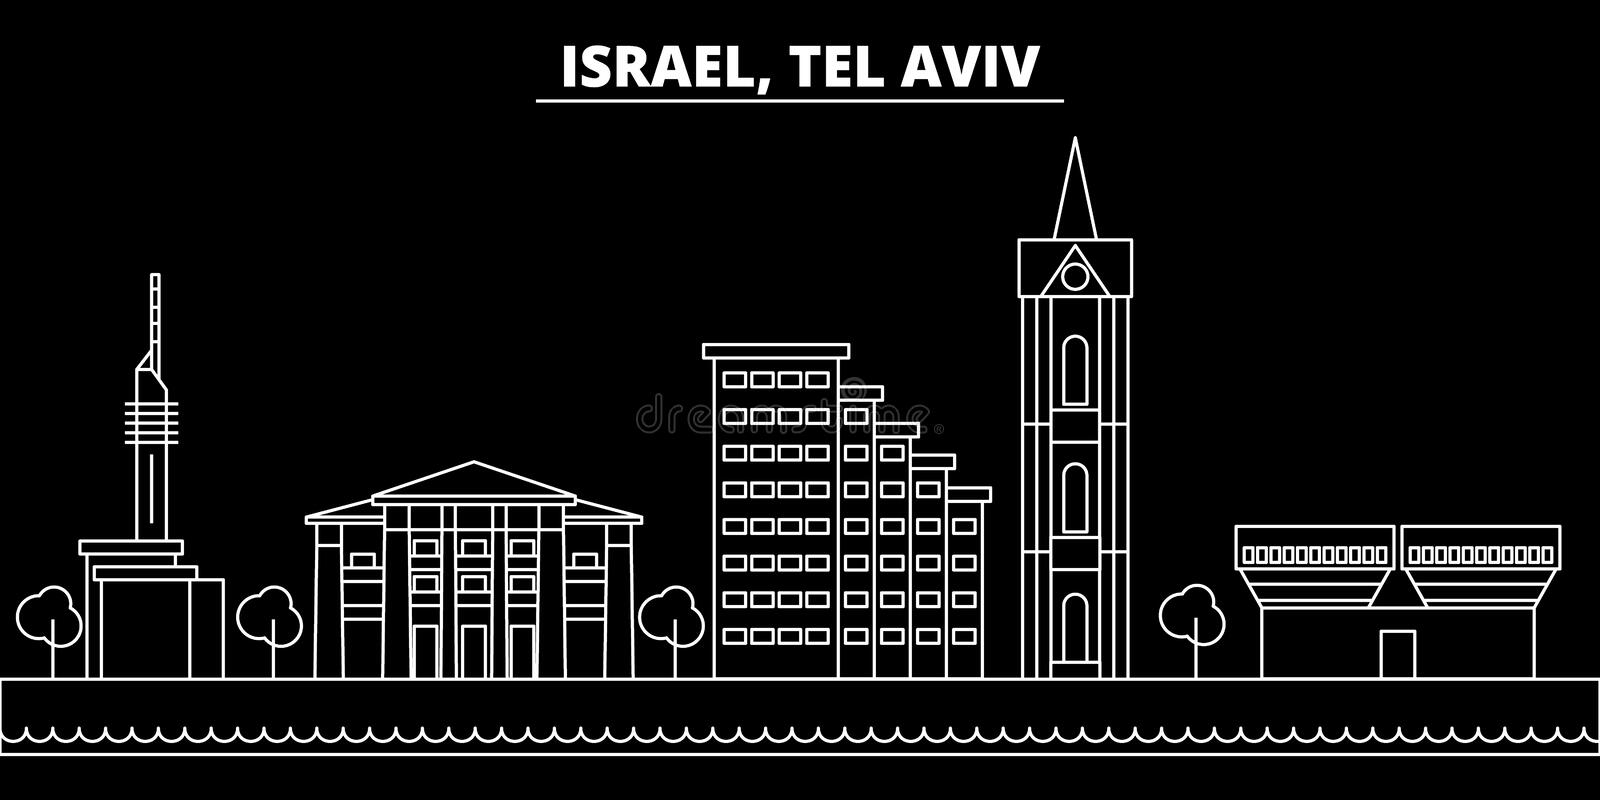 Tel aviv silhouette skyline. Israel - Tel aviv vector city, israeli linear architecture, buildings. Tel aviv travel stock illustration